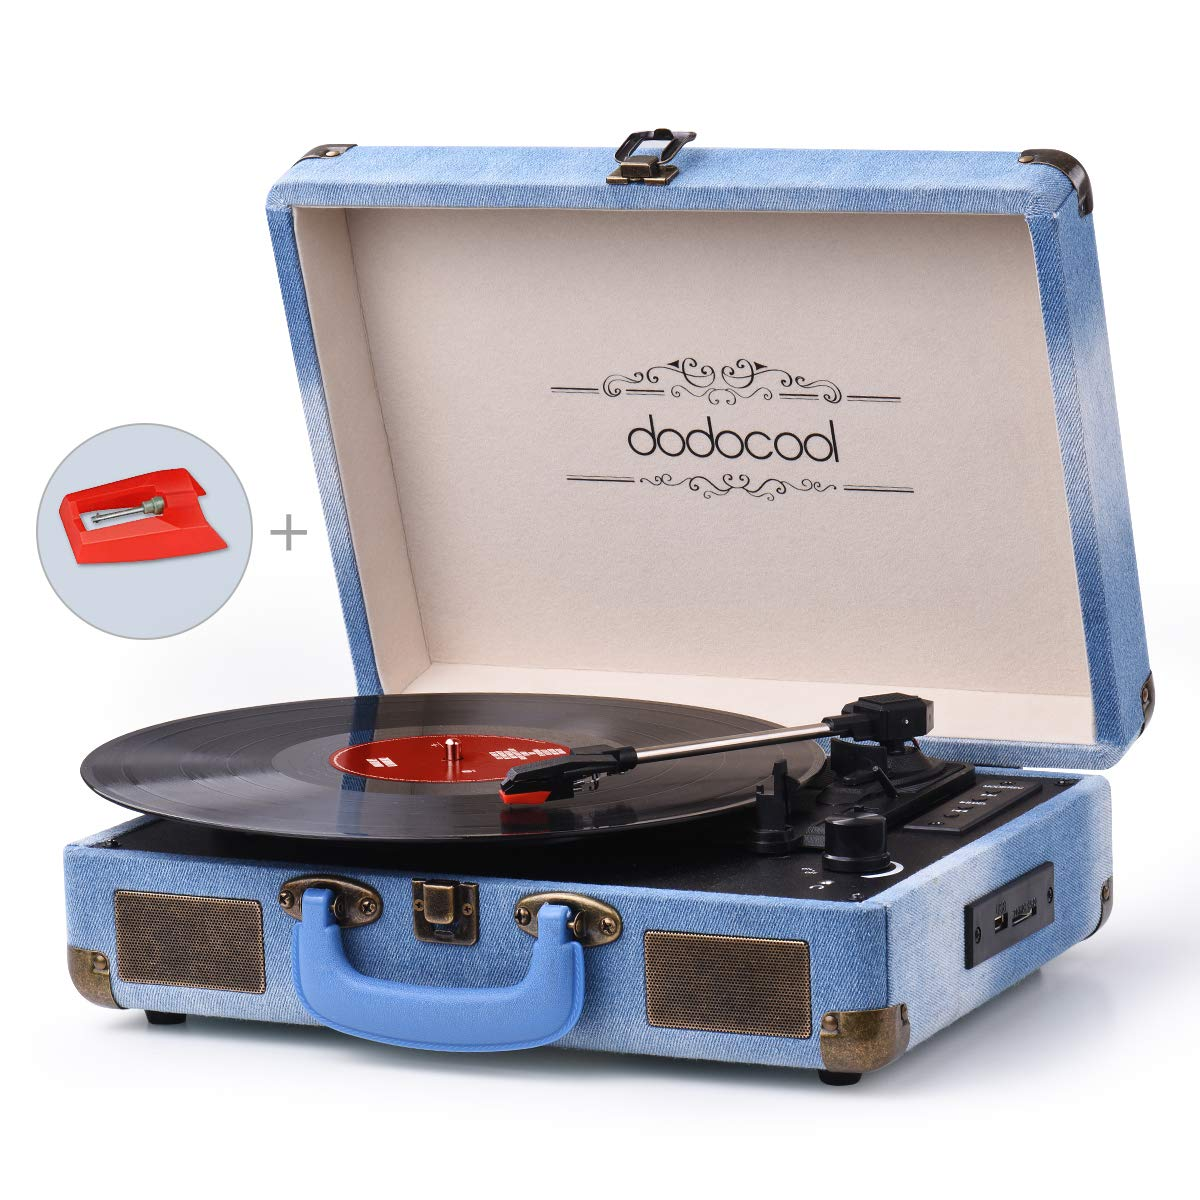 Vinyl Record Player, dodocool Vintage Turntable 3-Speed with Blue Tooth, Built in 2 Stereo Speakers, Vinyl to MP3 Converting/ RCA Line Out/ AUX / USB/ SD Input - Jean Style by dodocool (Image #1)